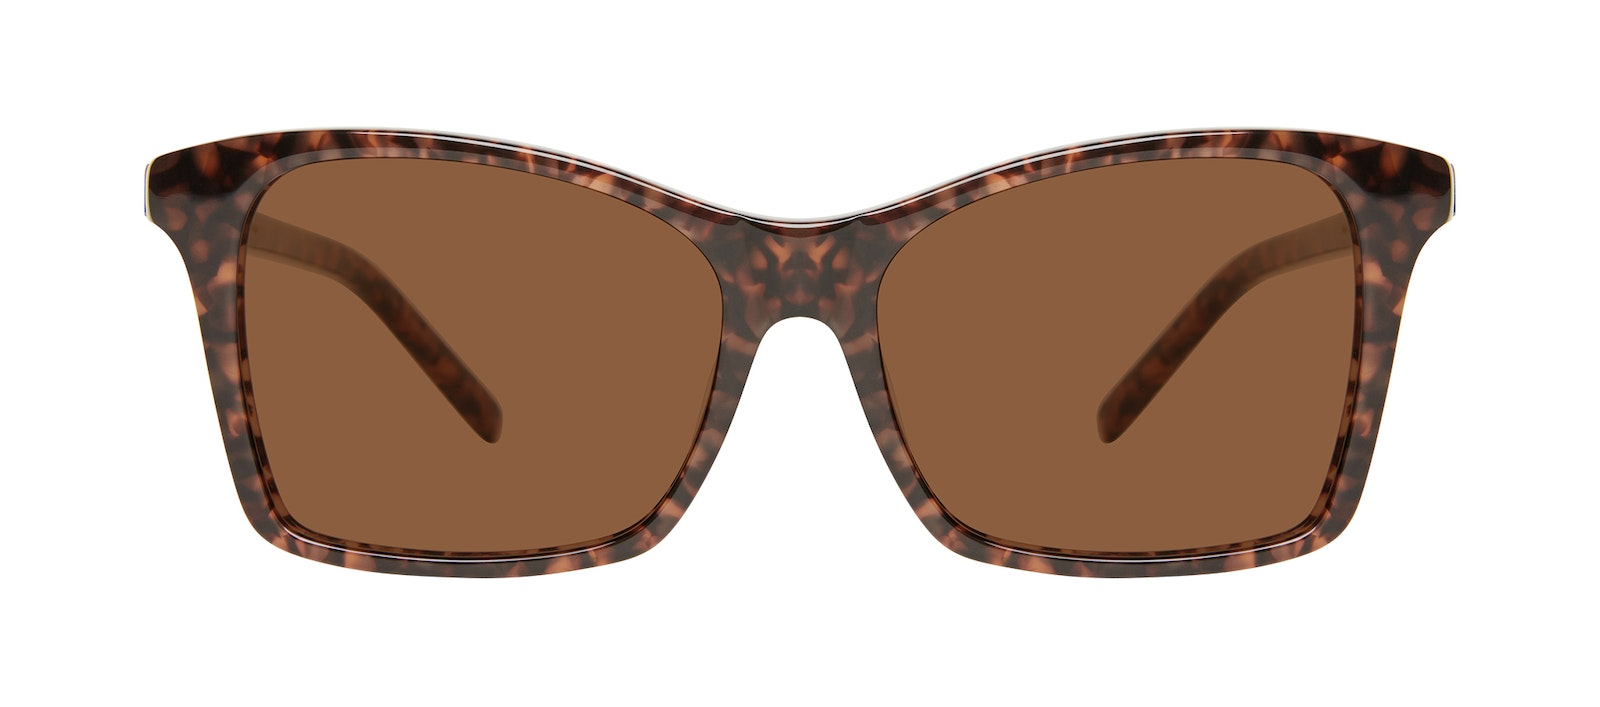 Affordable Fashion Glasses Square Sunglasses Women Cadence Leopard Front